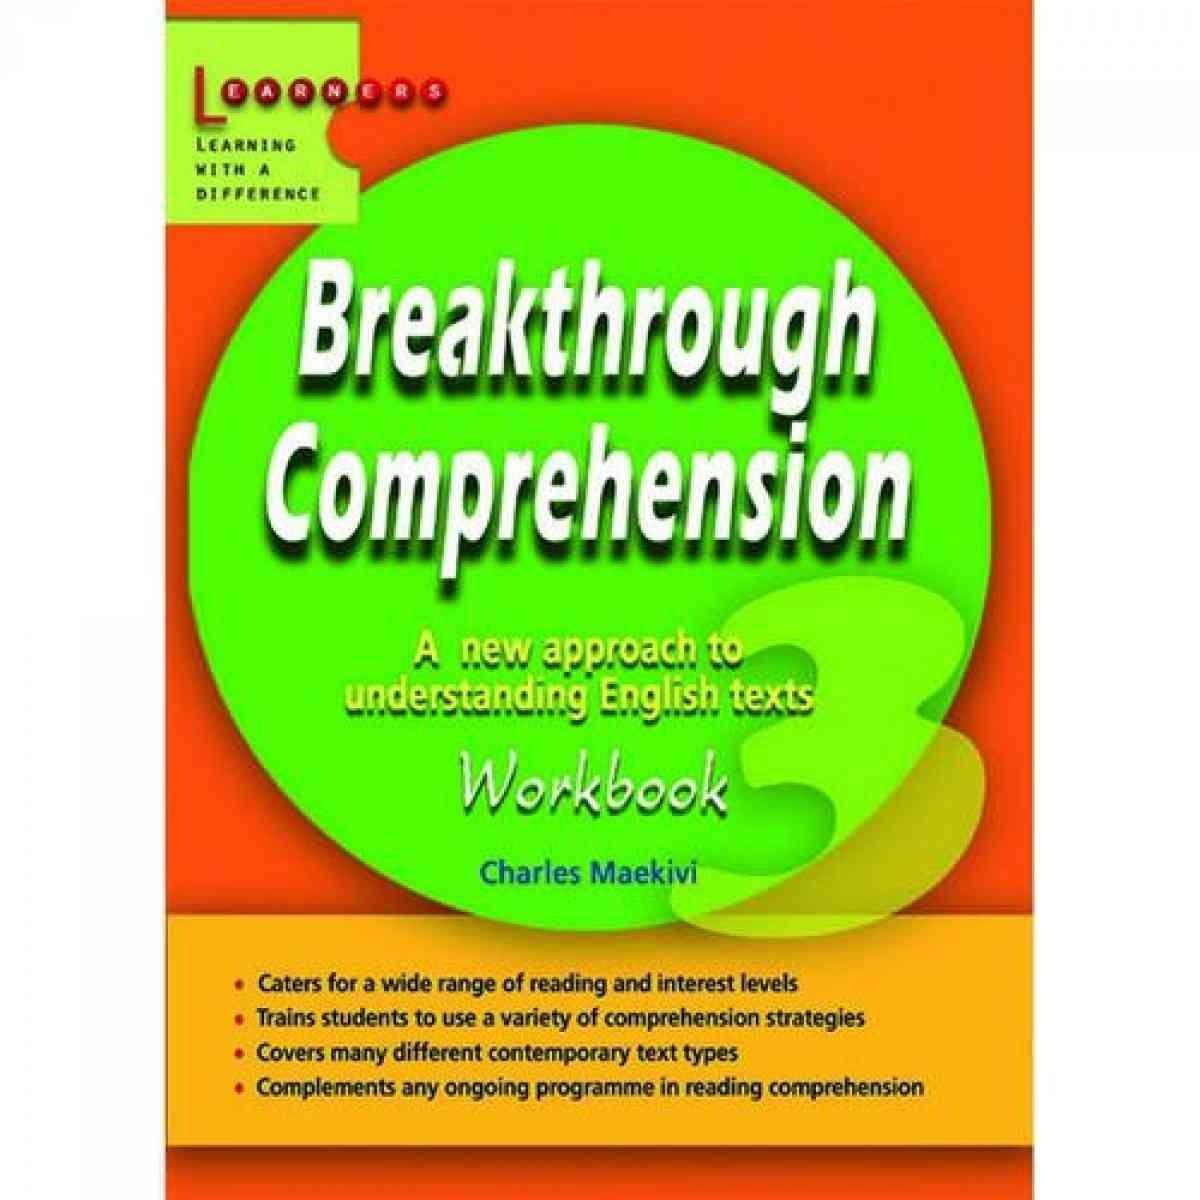 SCHOLASTIC EDUCATION INTERNATIONAL SINGAPORE Breakthrough Comprehension: Workbook 3